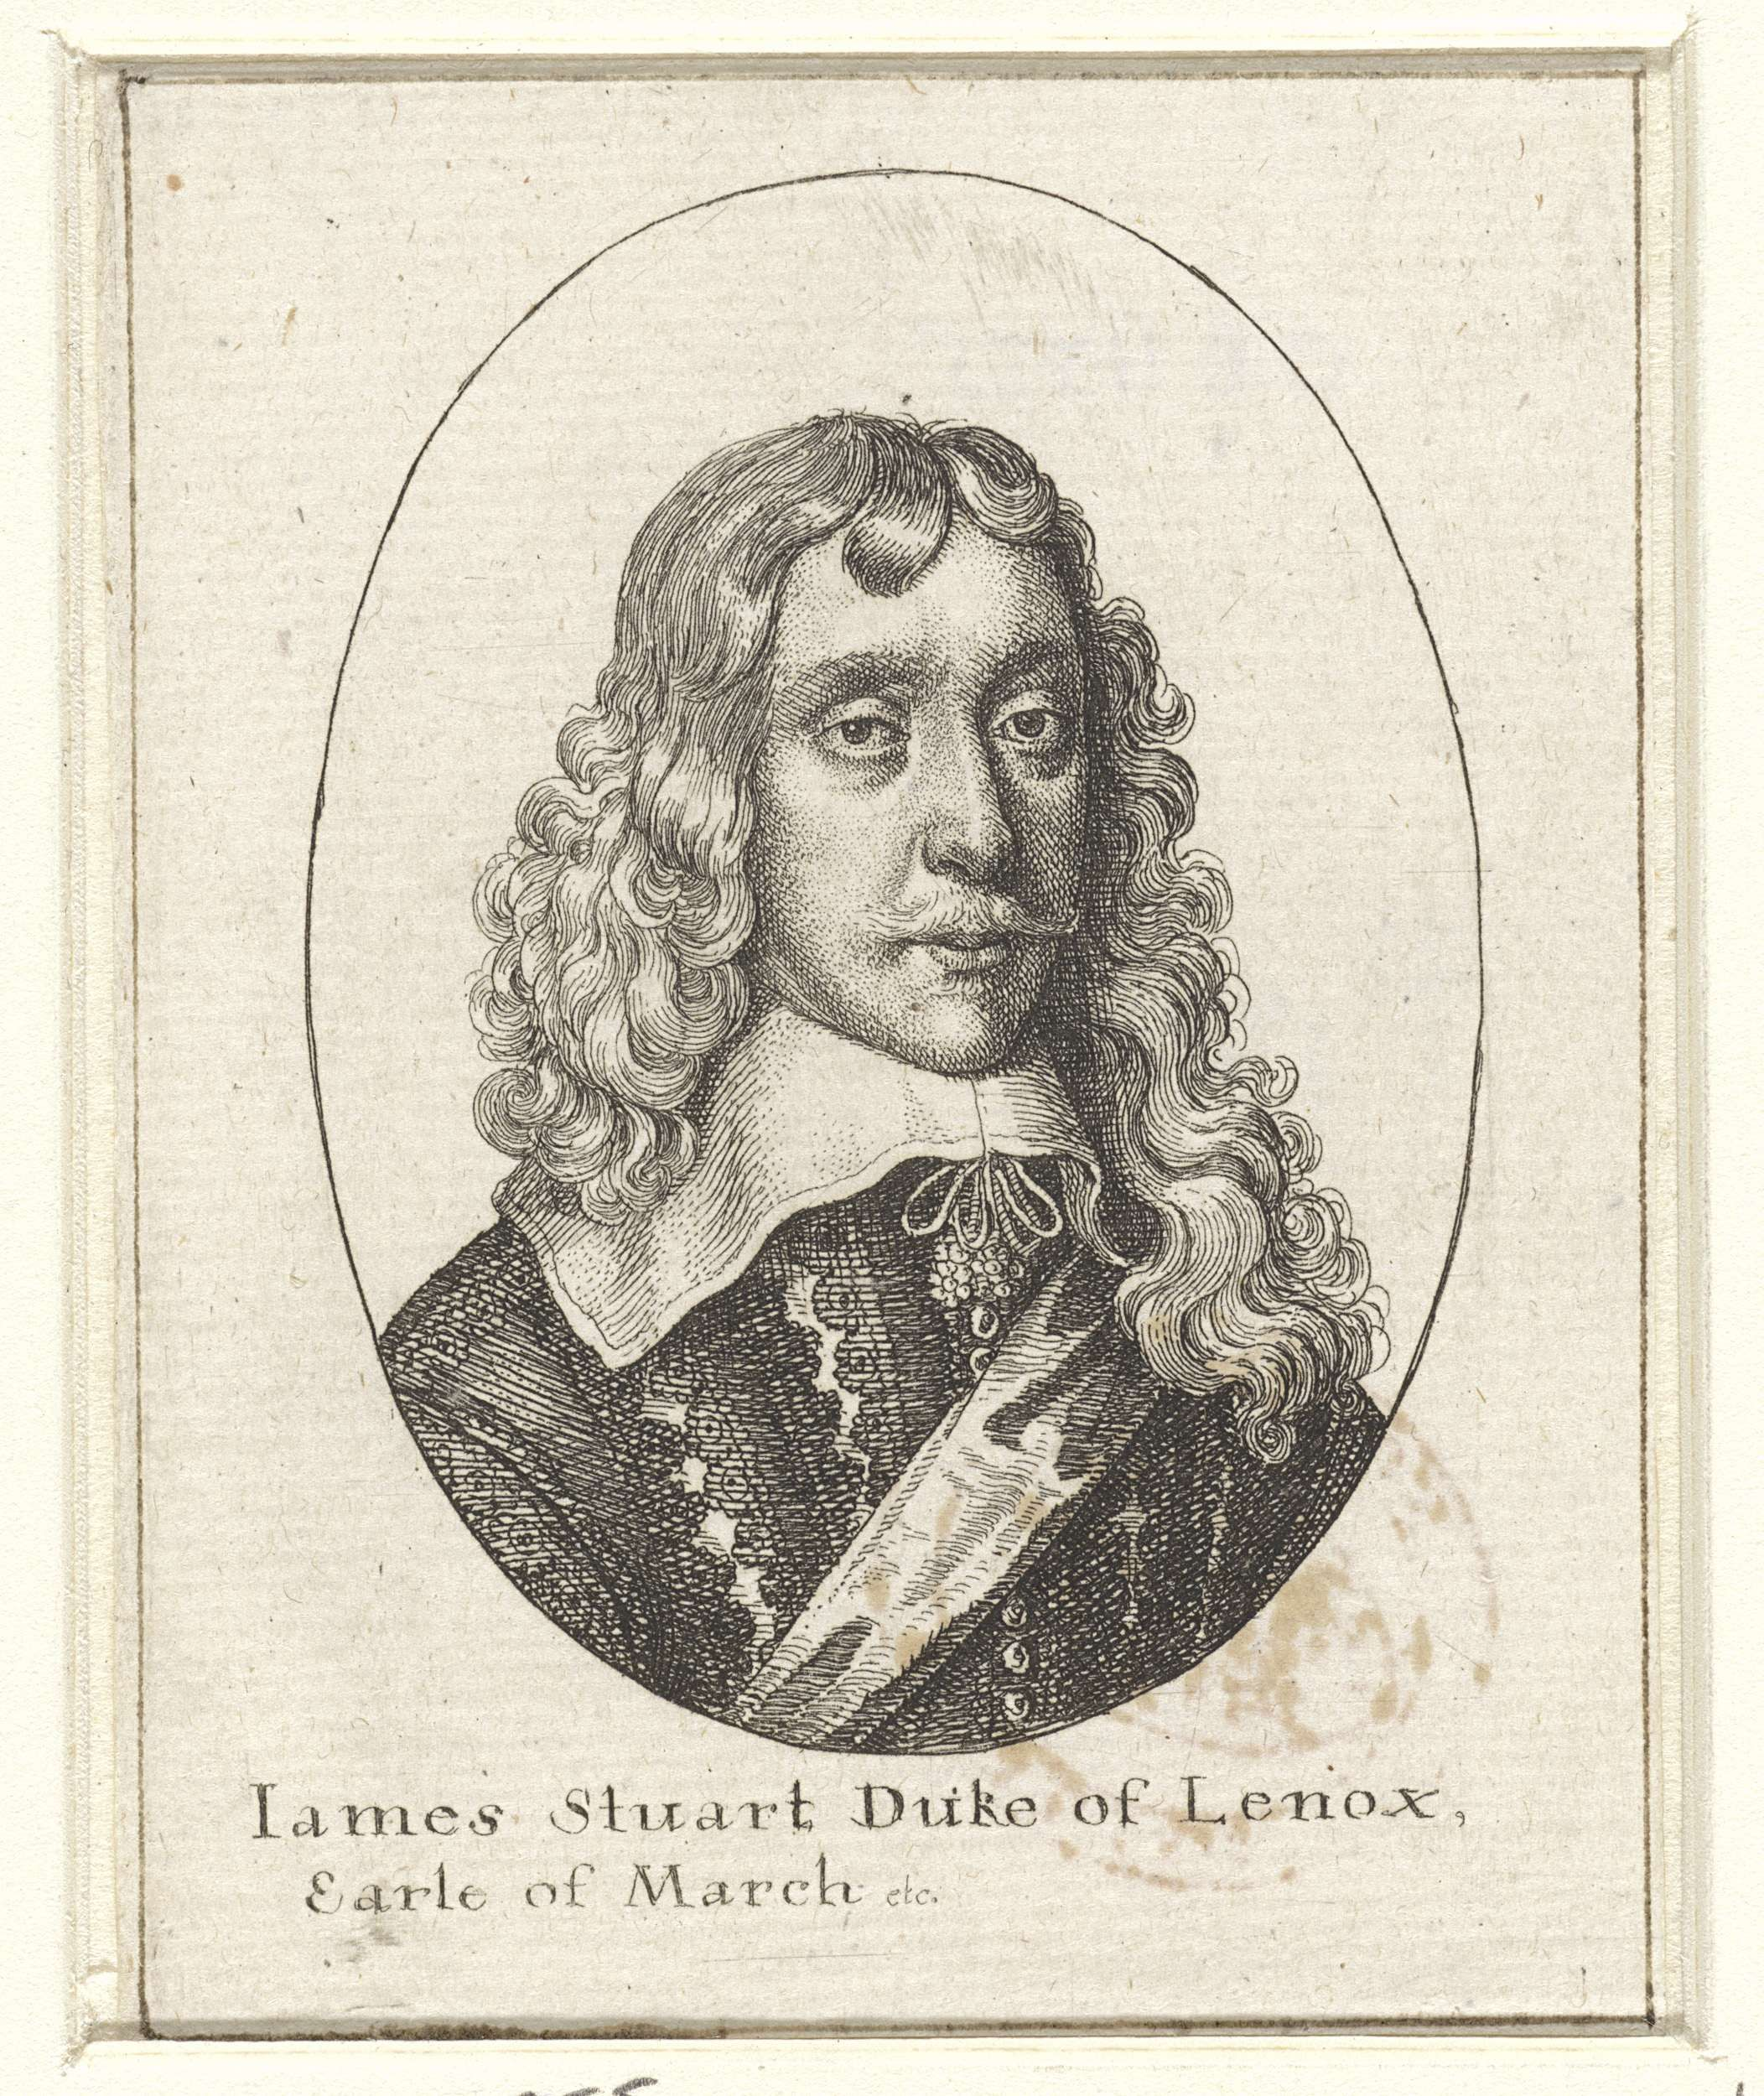 Wenceslaus Hollar | Portret van James Stuart, hertog van Lennox en Richmond, Wenceslaus Hollar, 1636 - 1644 |